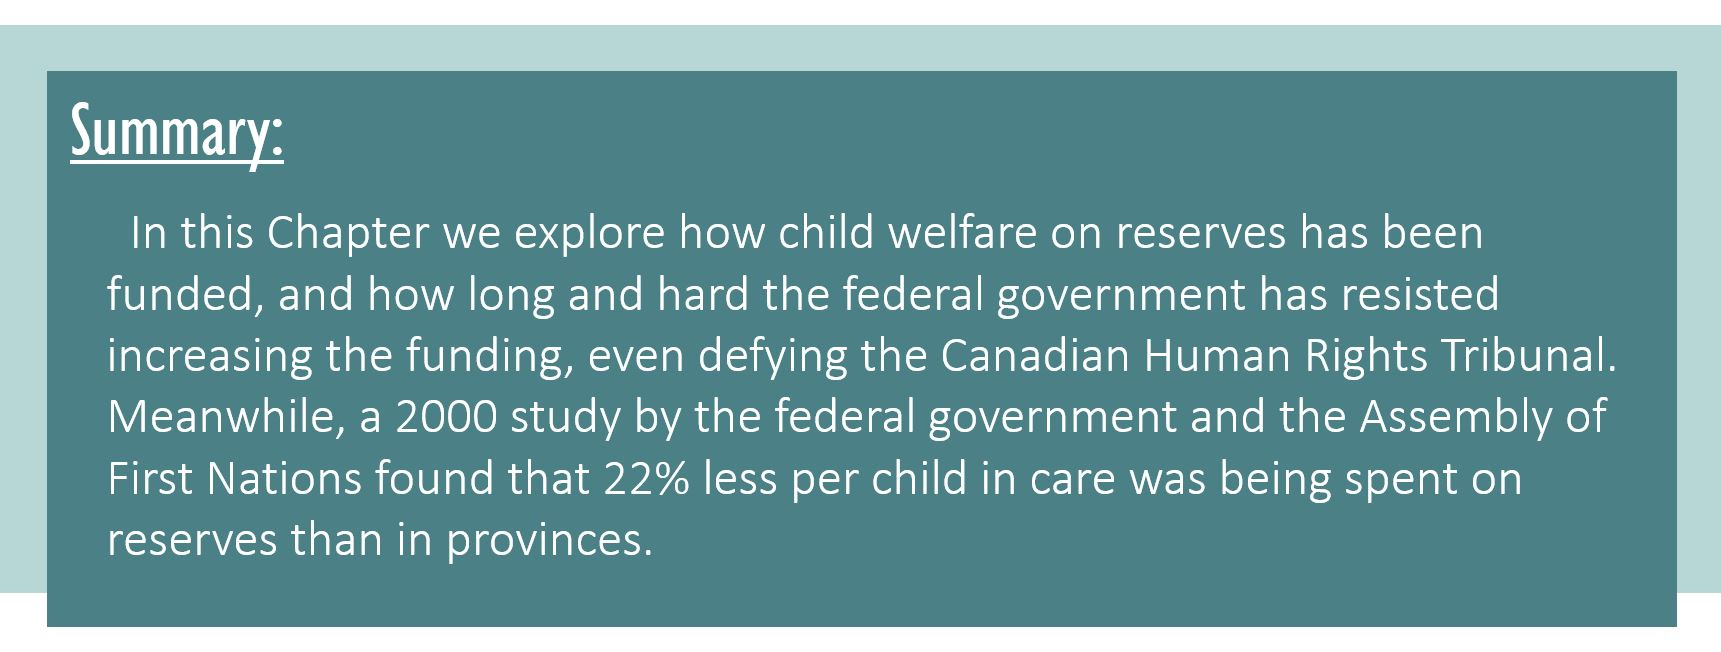 Summary: In this Chapter we explore how child welfare on reserves has been funded, and how long and hard the federal government has resisted increasing the funding, even defying the Canadian Human Rights Tribunal. Meanwhile, a 2000 study by the federal government and the Assembly of First Nations found that 22% less per child in care was being spent on reserves than in provinces.